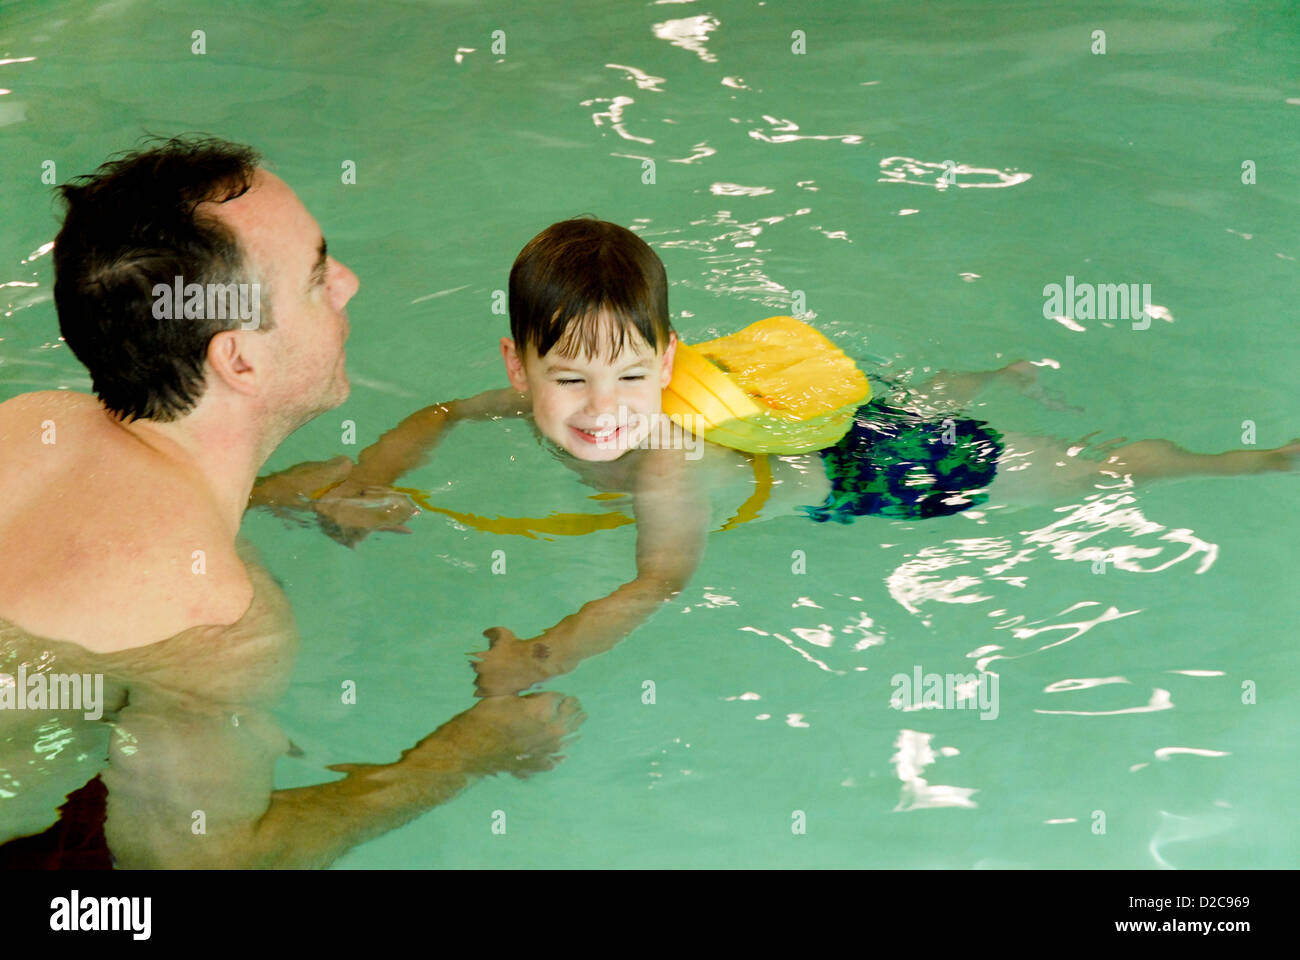 Father And 2 1/2-Year Old Son, Massachusetts, Swimming Lessons - Stock Image